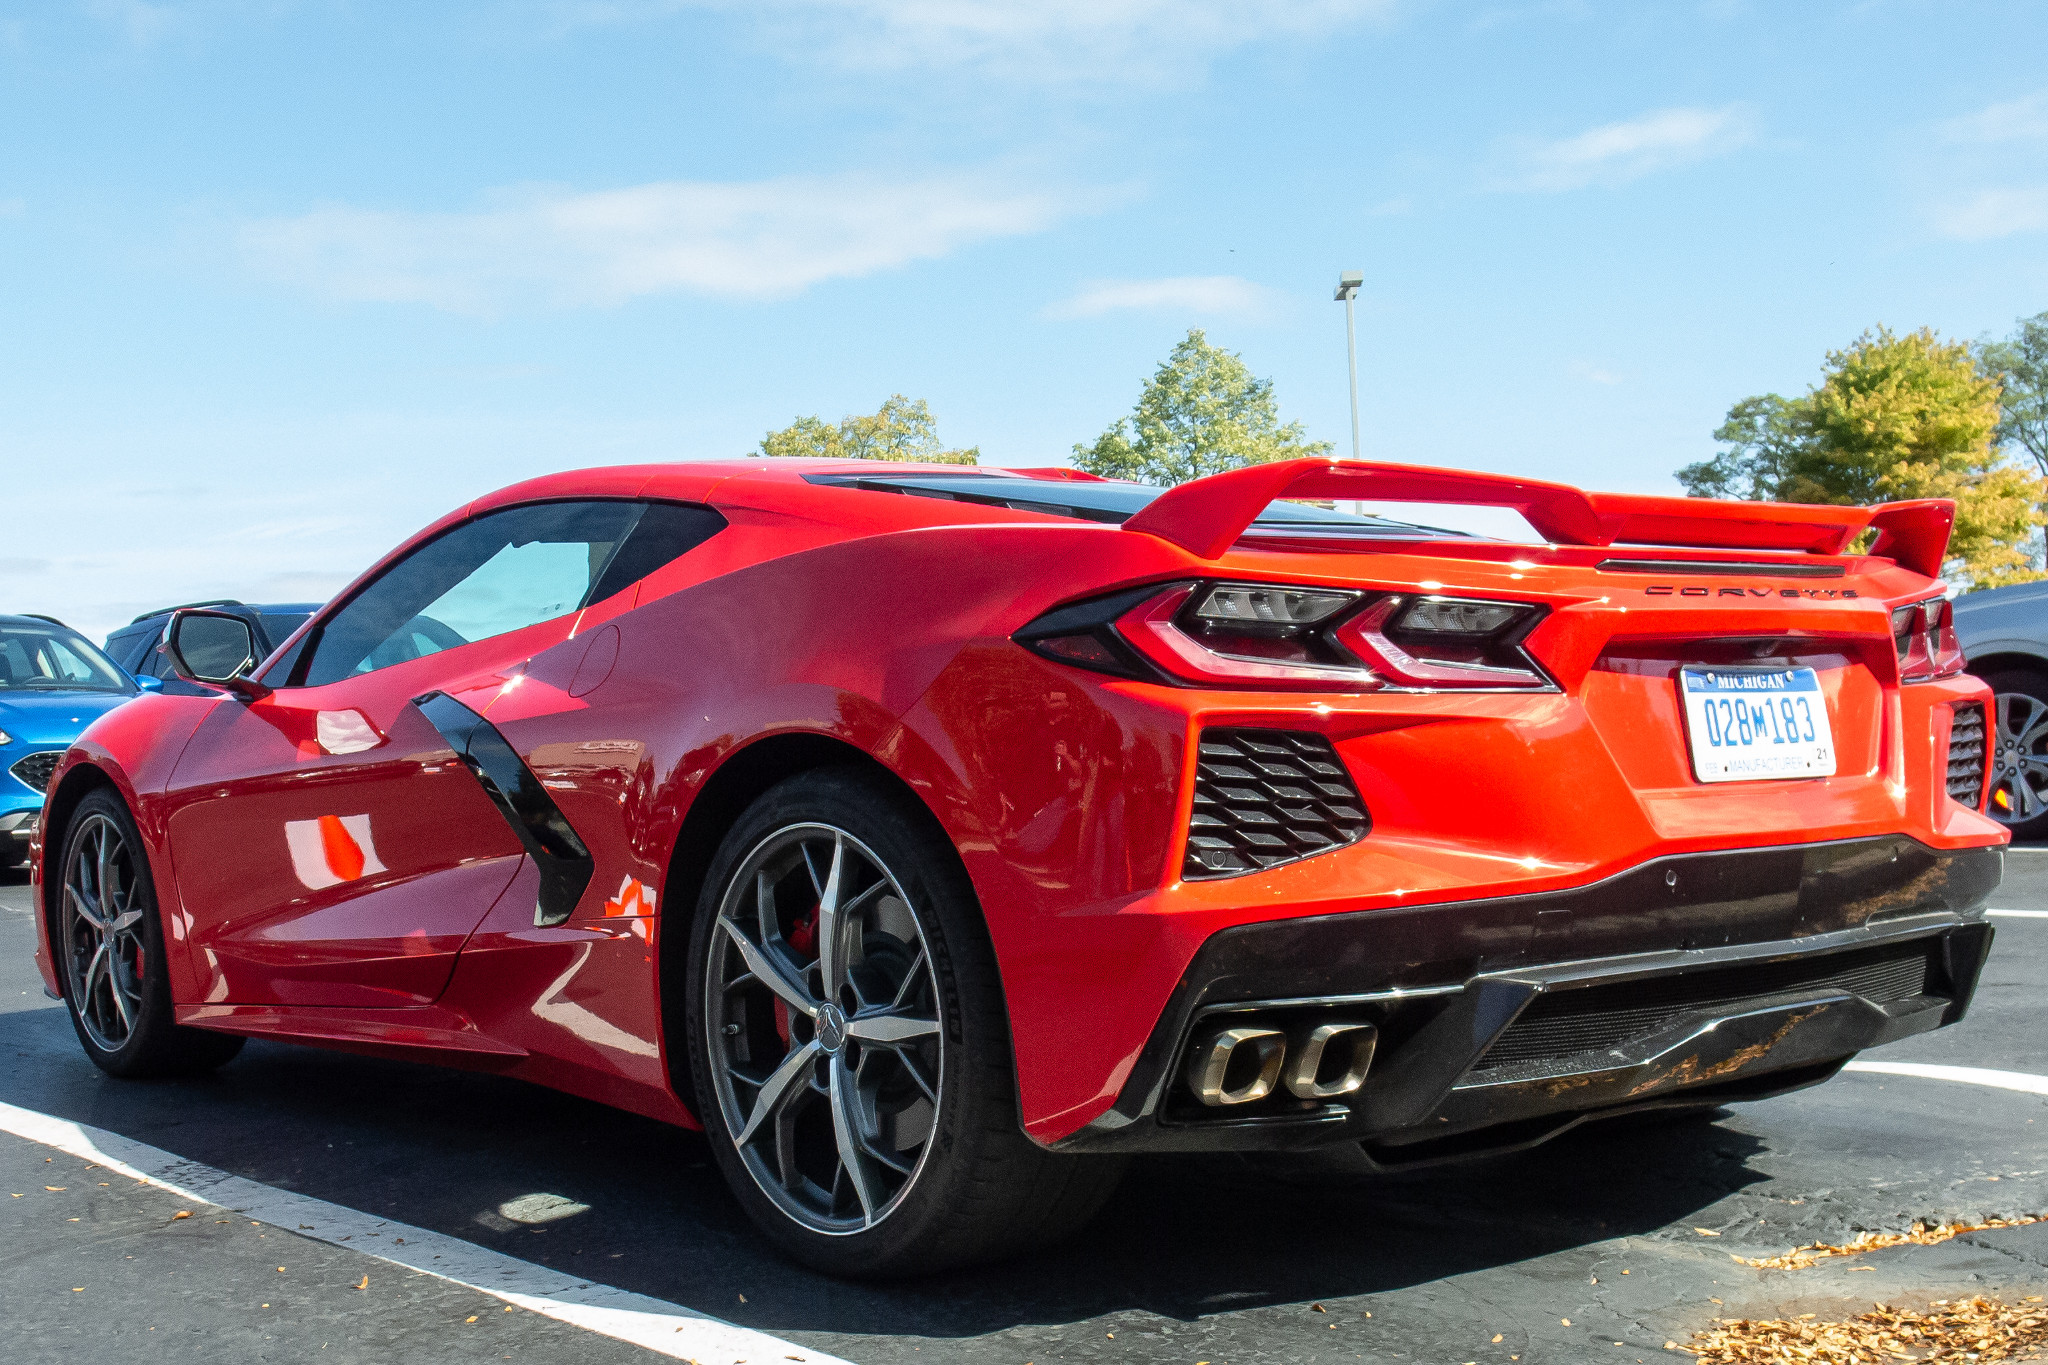 2020 Chevrolet Corvette: What It Lacks in Timeliness, It Makes Up in Zero-to-60 Time